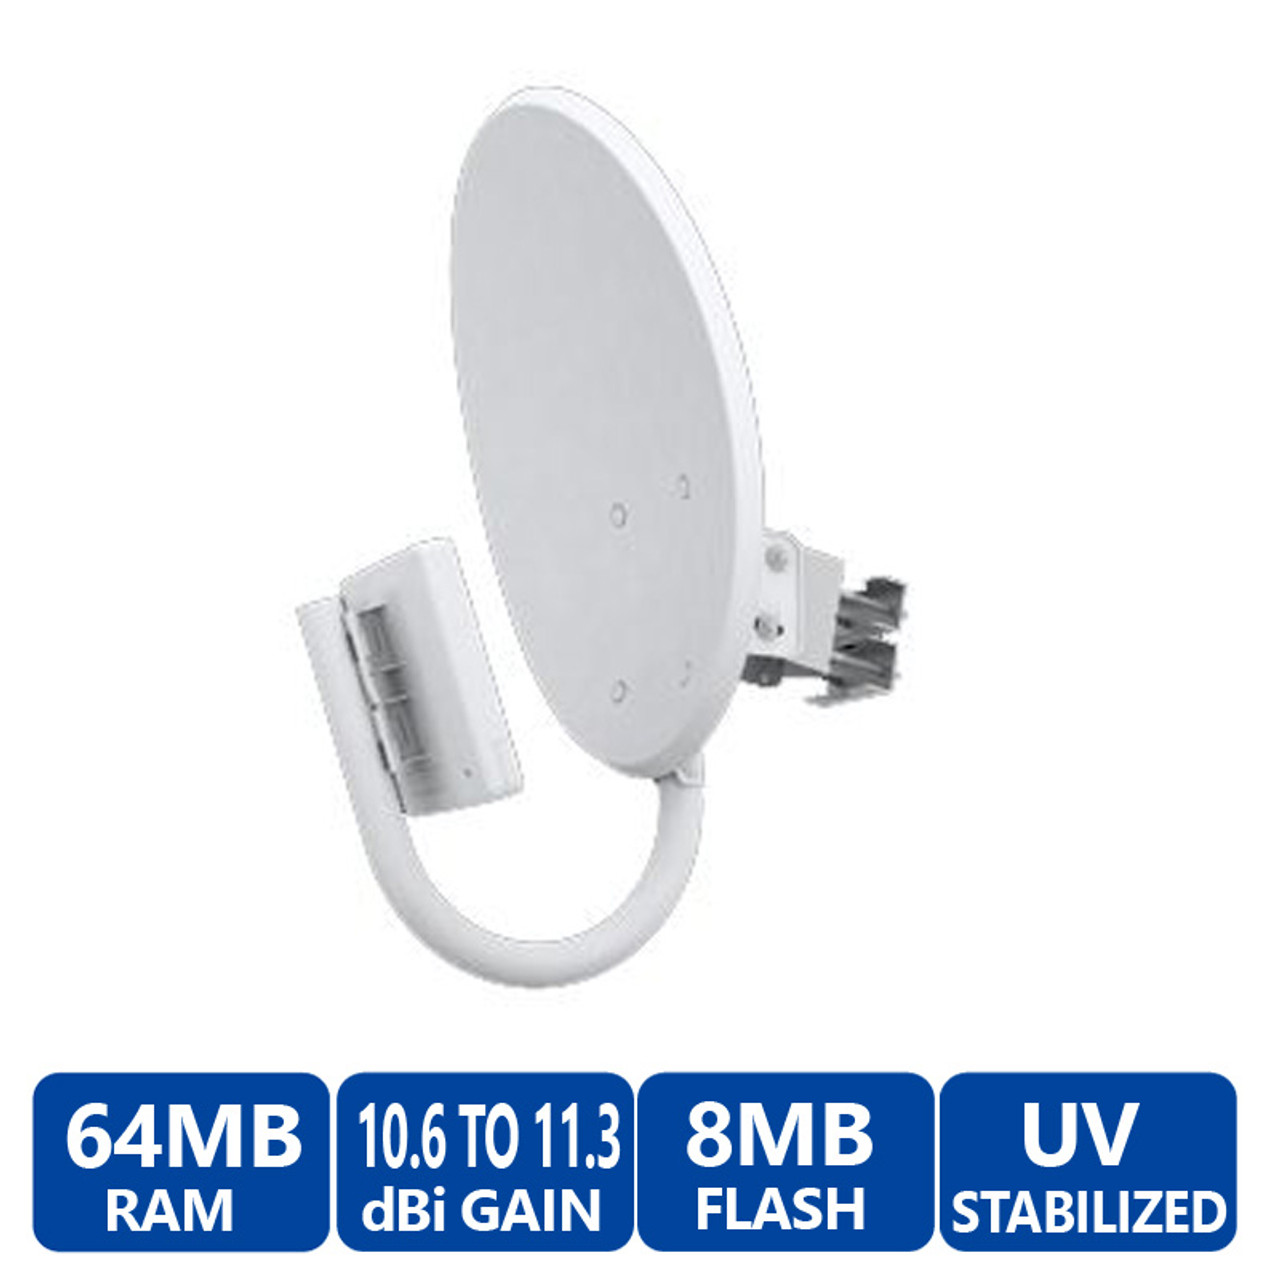 Ubiquiti NBM9 NanoBridge M9 AirMAX Bridge 900 MHz